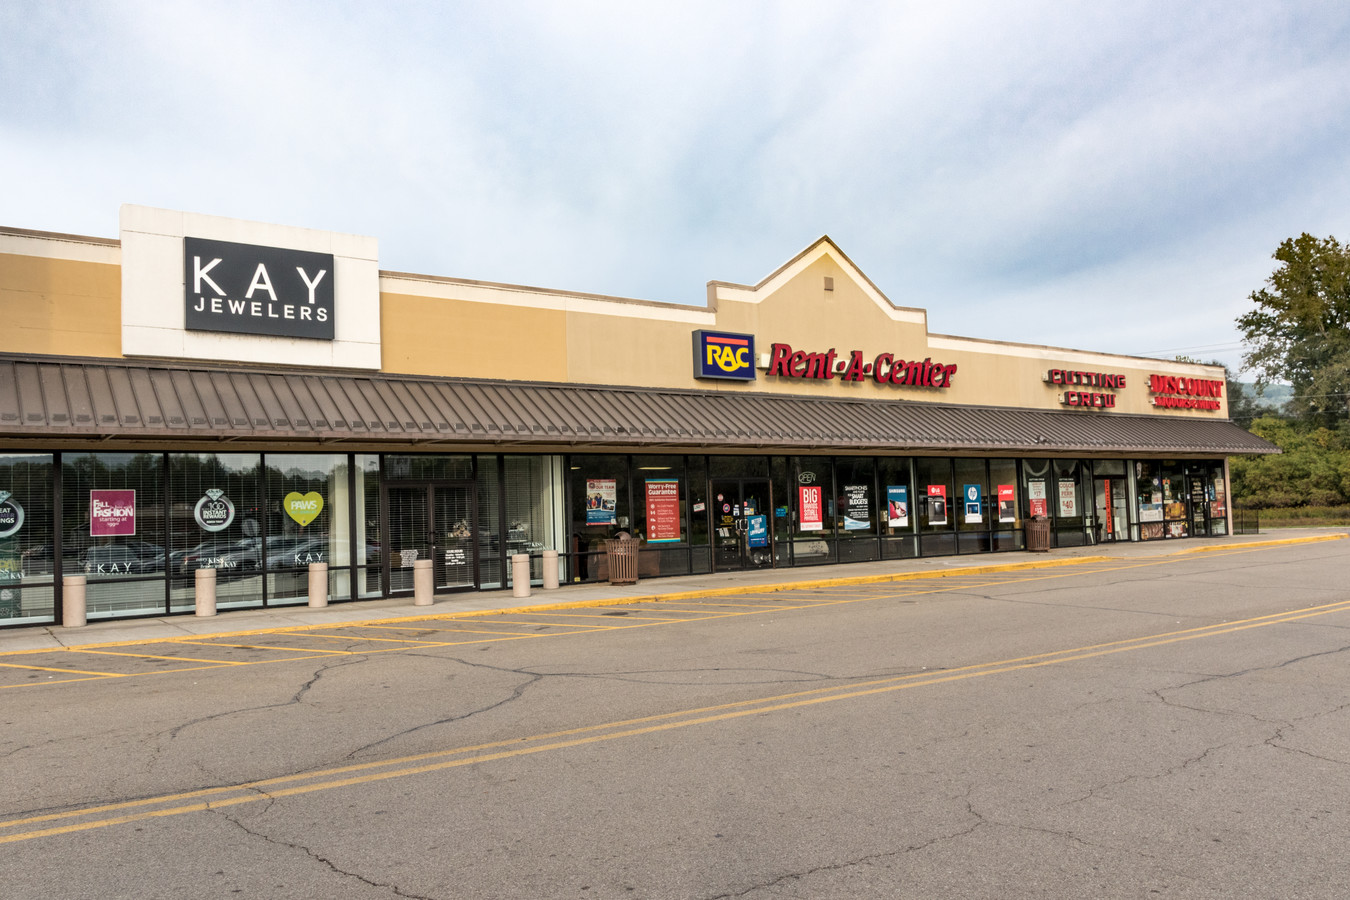 Kay Jewelers and Rent A Center